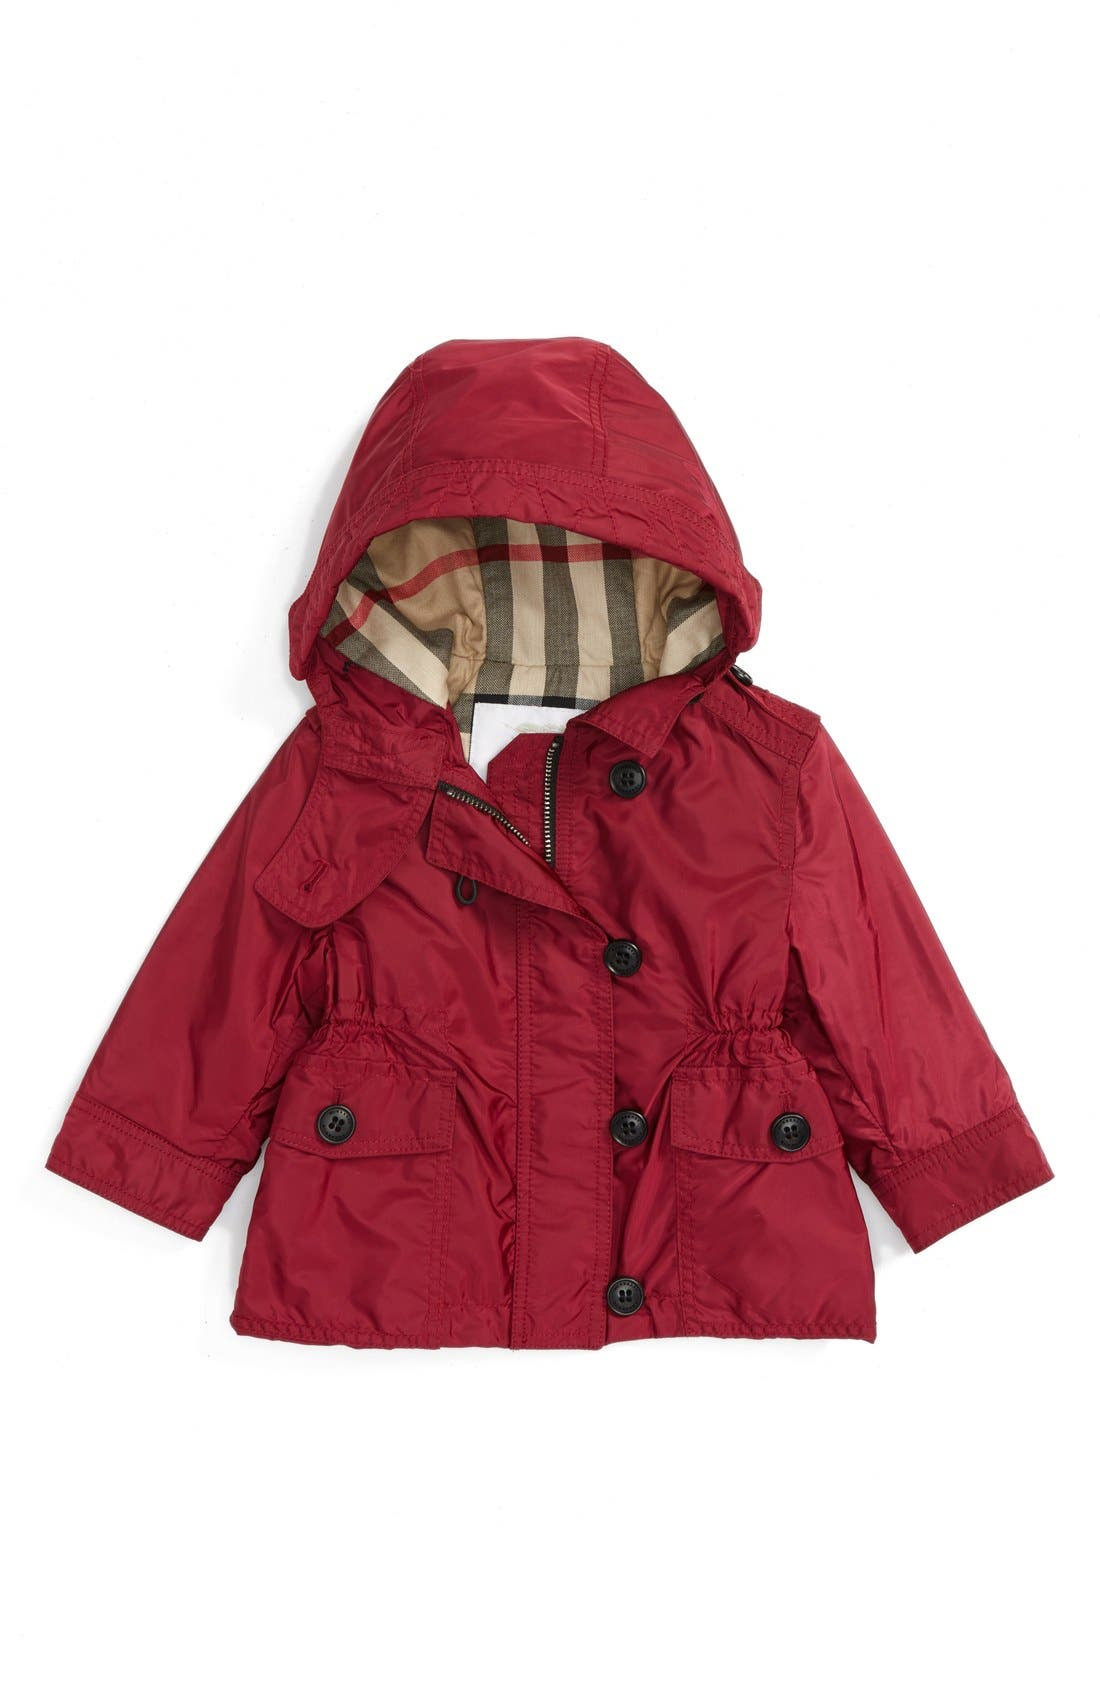 Alternate Image 1 Selected - Burberry 'Karen' Hooded Jacket (Baby Girls)